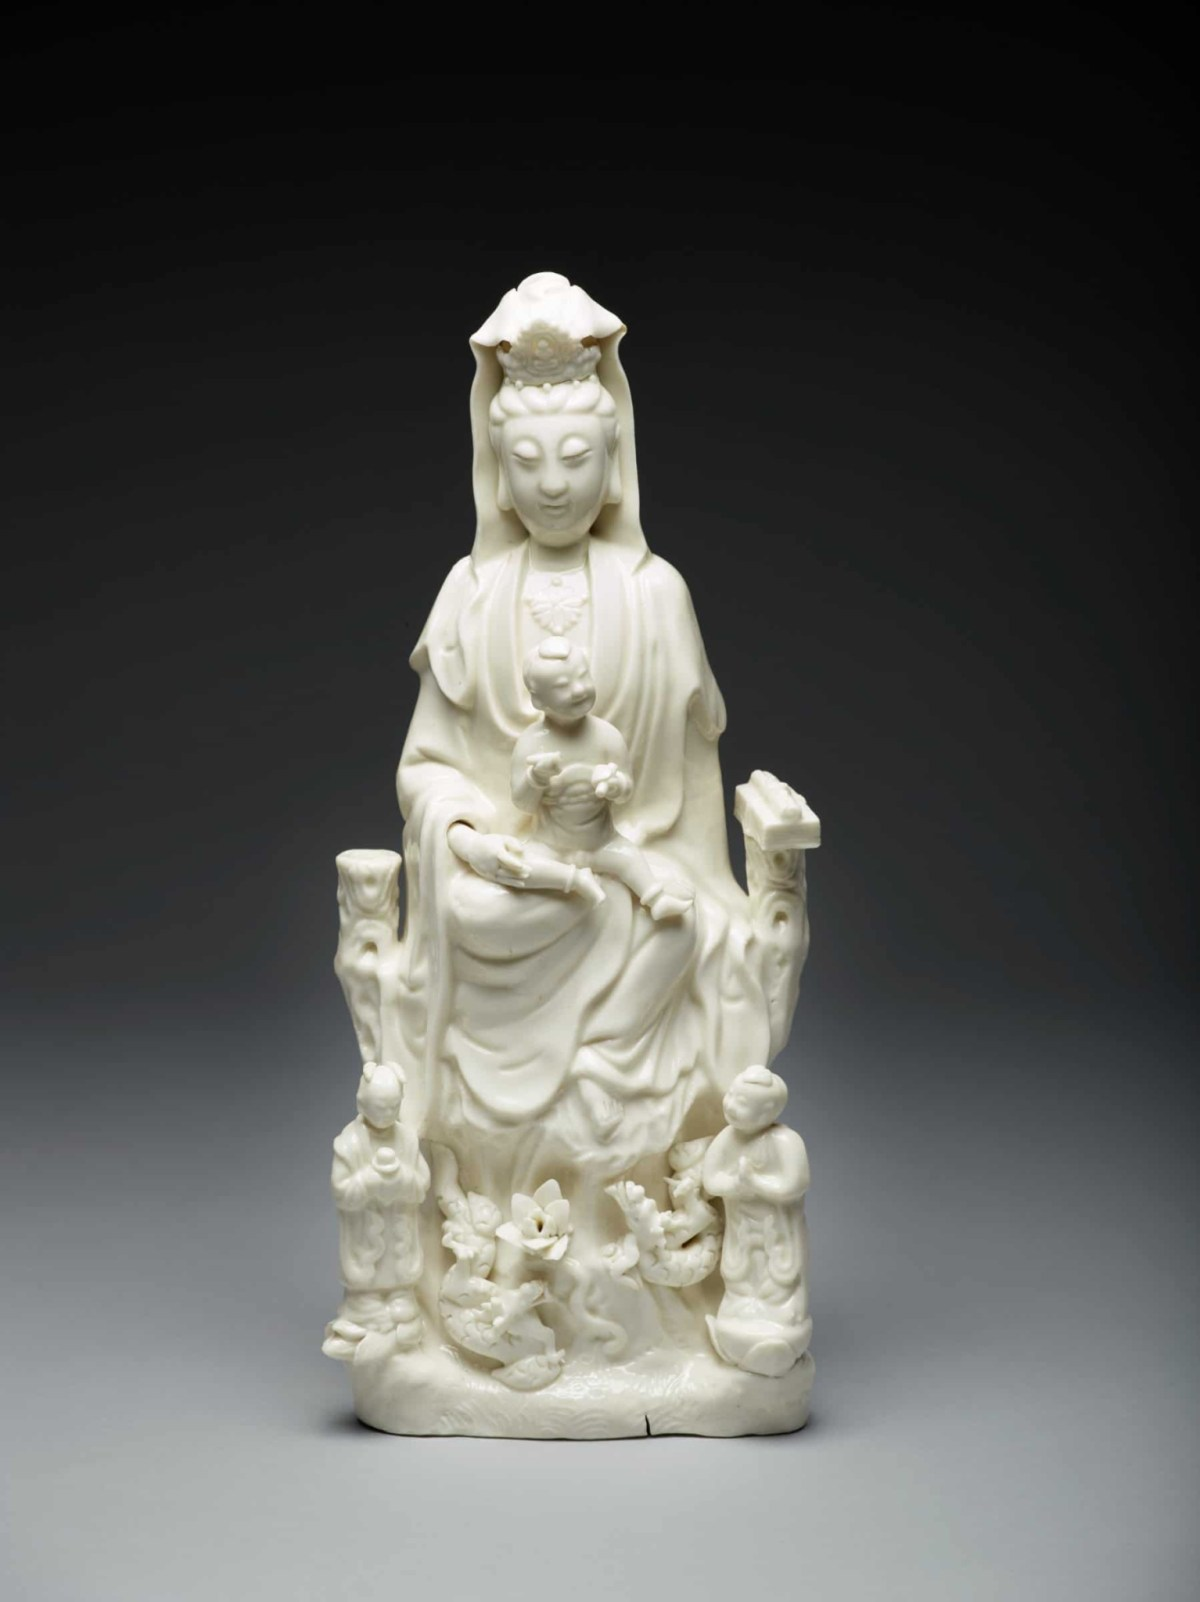 Intersections of Faith: Guanyin and Mother Mary